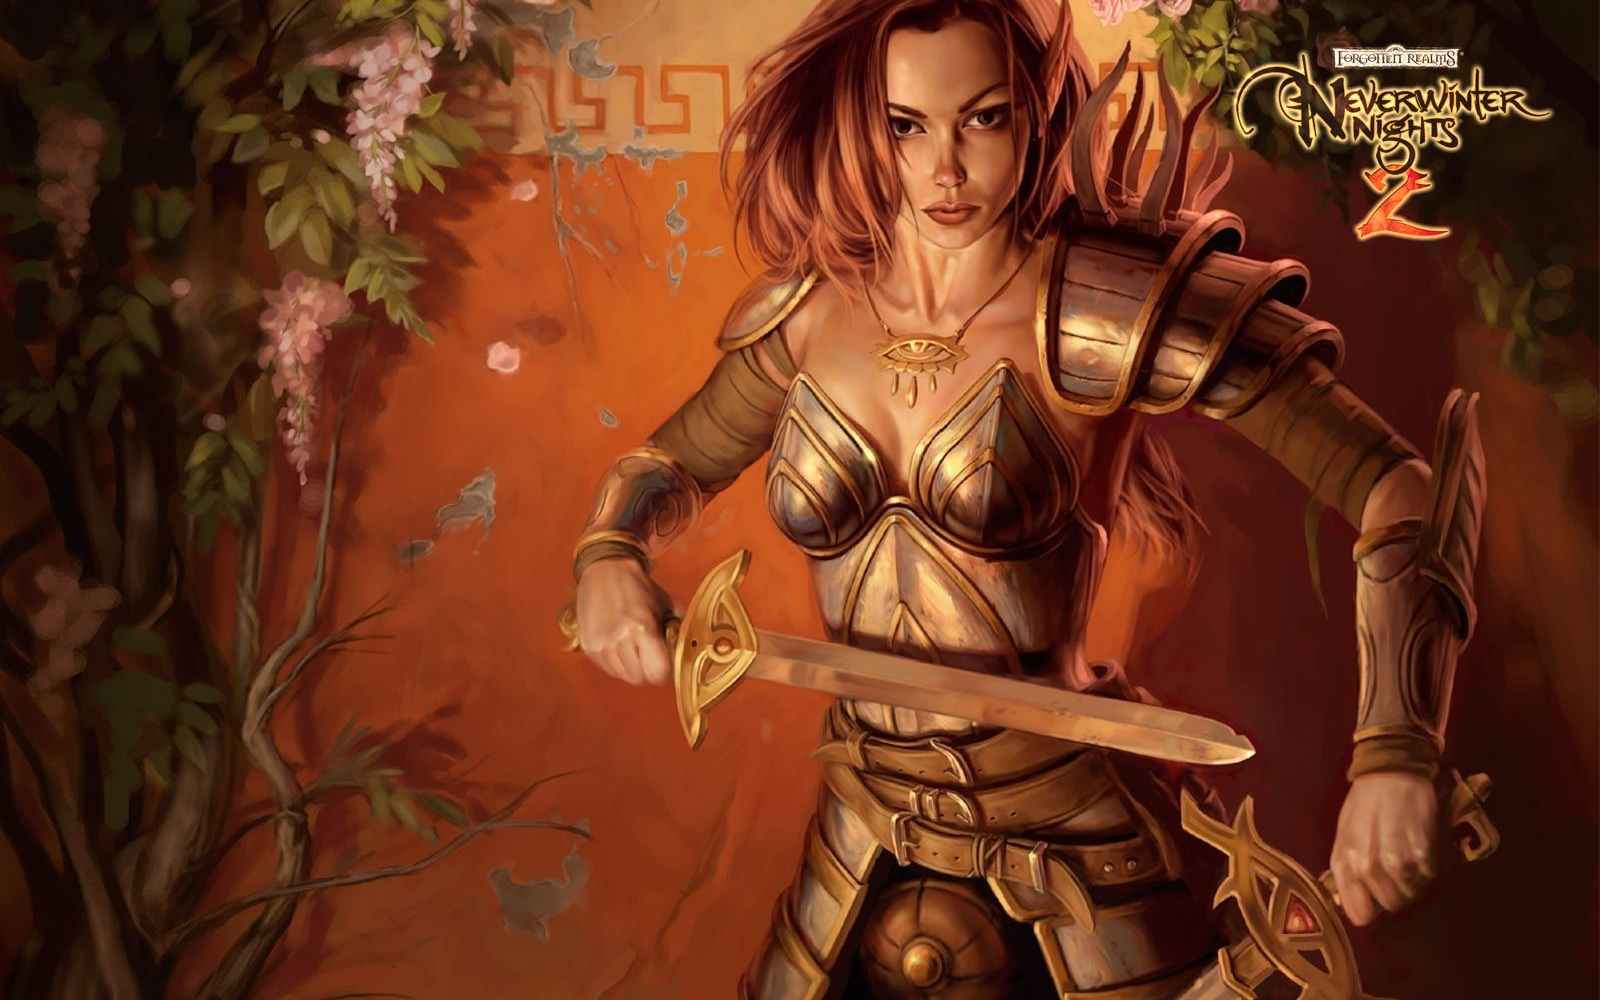 http://1.bp.blogspot.com/-WCHd4ogtbOM/ULDpw8W_a4I/AAAAAAAATPc/waNxSx8BbWs/s1600/NeverWinter_Nights_Warrior_Women_Wallpaper.jpg